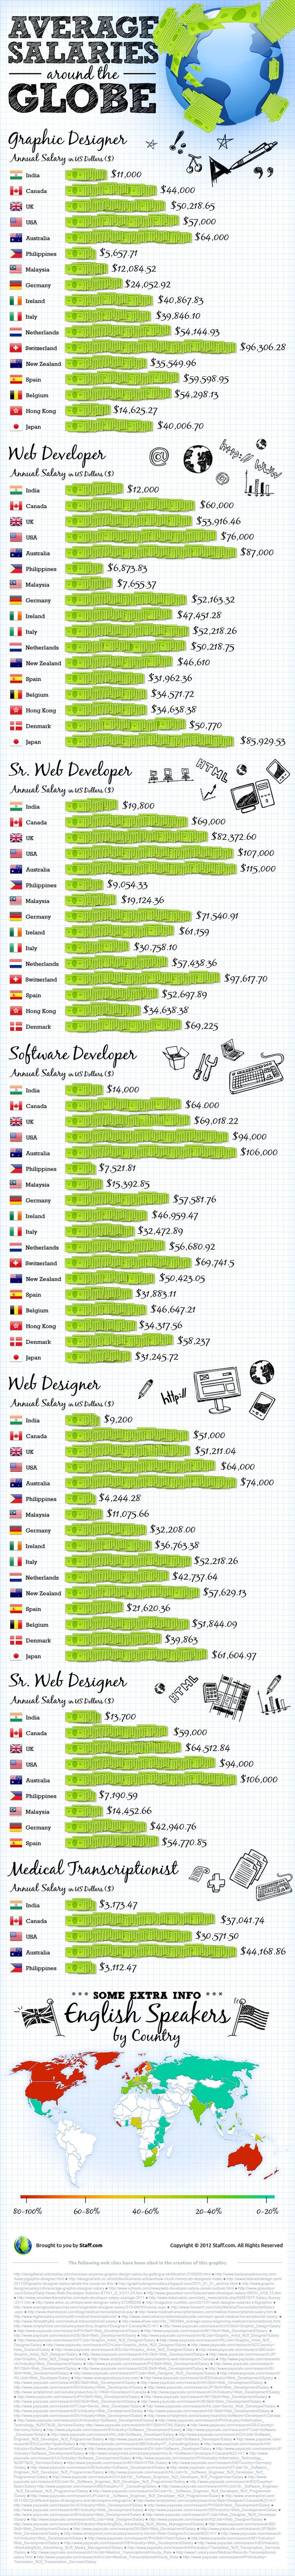 Average Salaries For Designers And Developers From Around The Globe